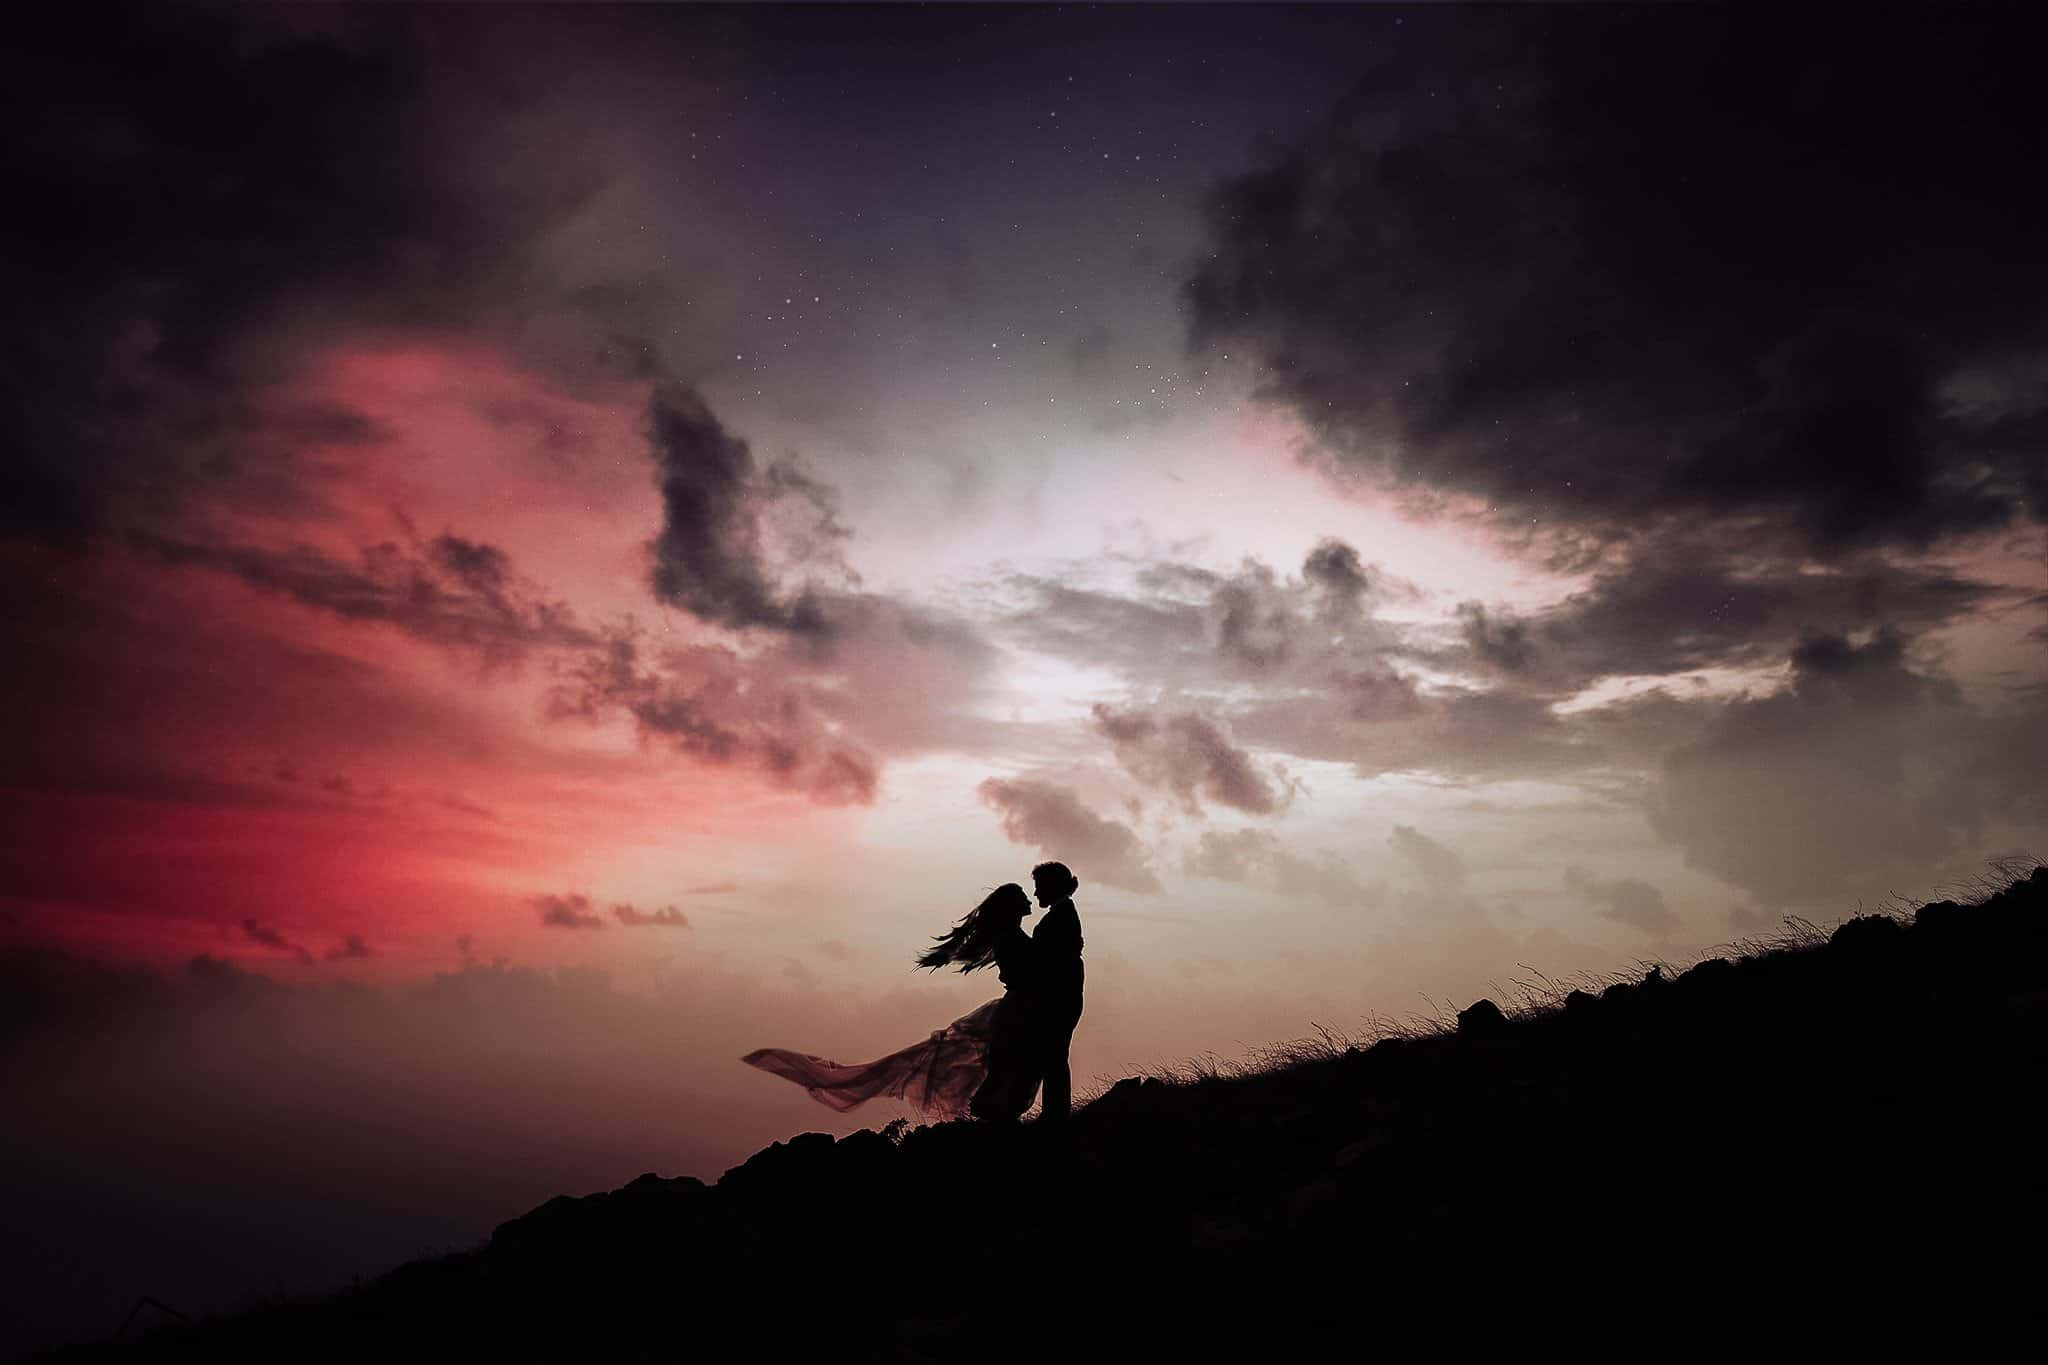 A beautiful photo of two lovers standing on a hill in front of the night sky